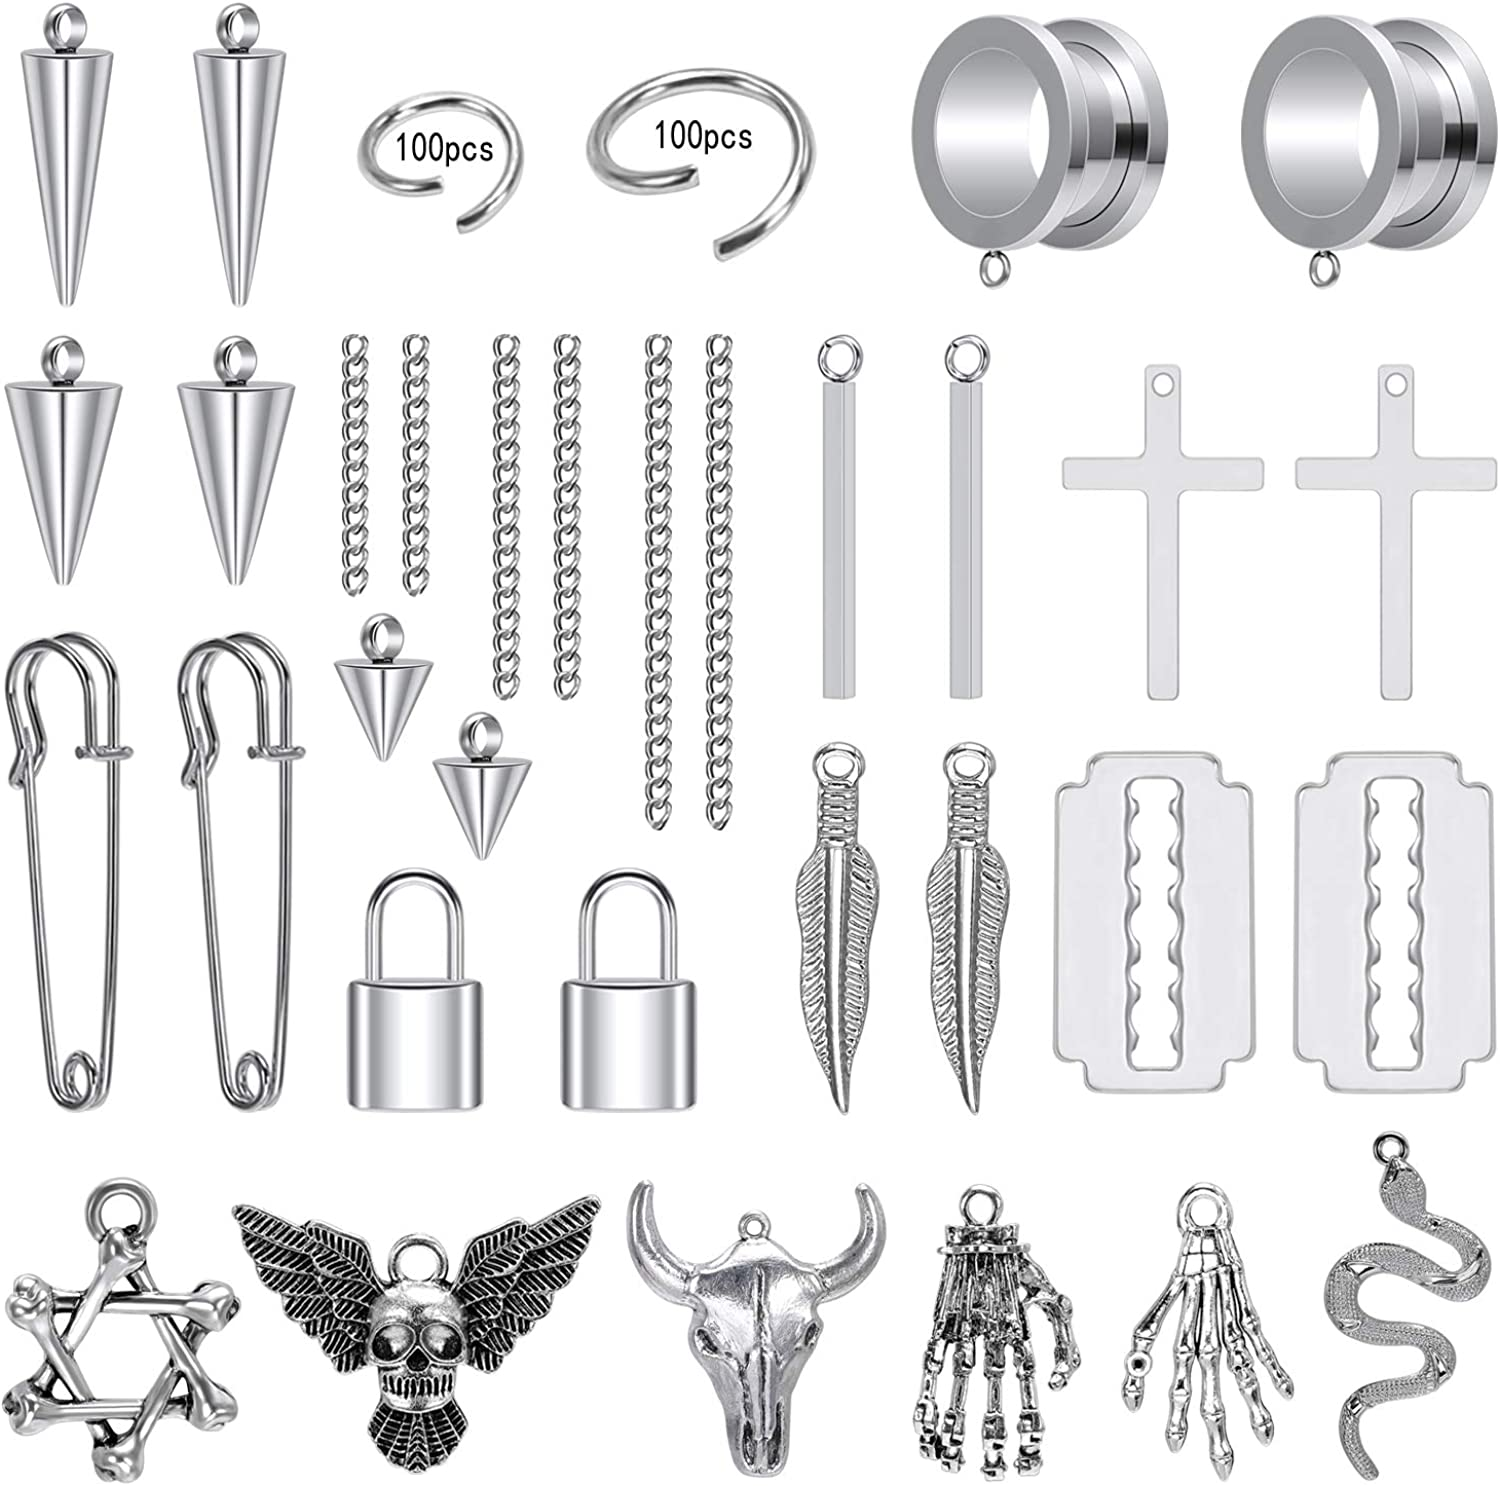 ZS 230 Pieces DIY Ear Tunnels Accessories Dangle Gauges Body Piercing Jewelry, Stainless Steel 4g - 7/8 inch Dangle Ear Gauges for Women/Men